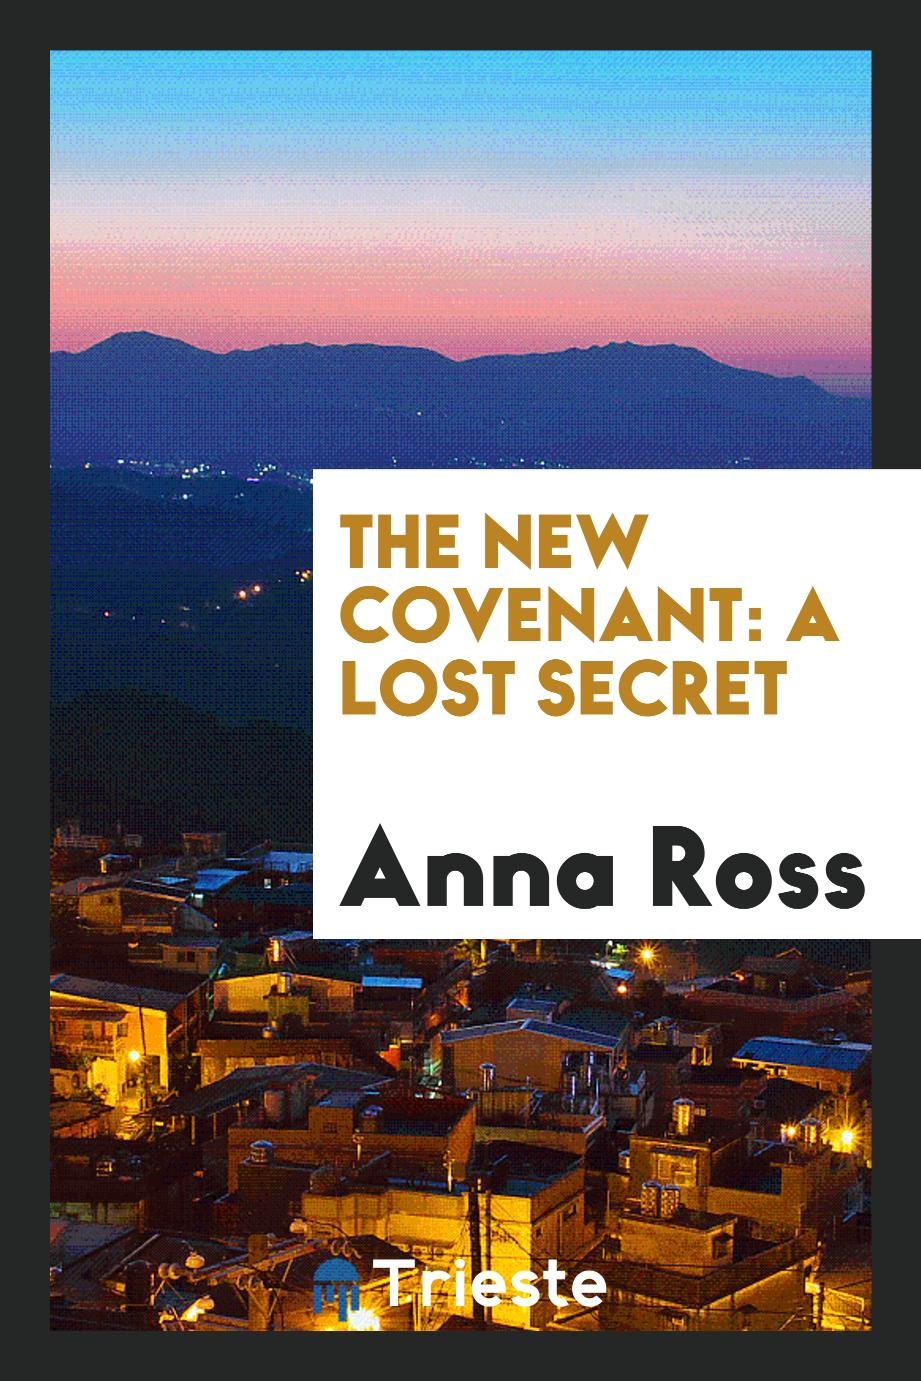 The new covenant: a lost secret